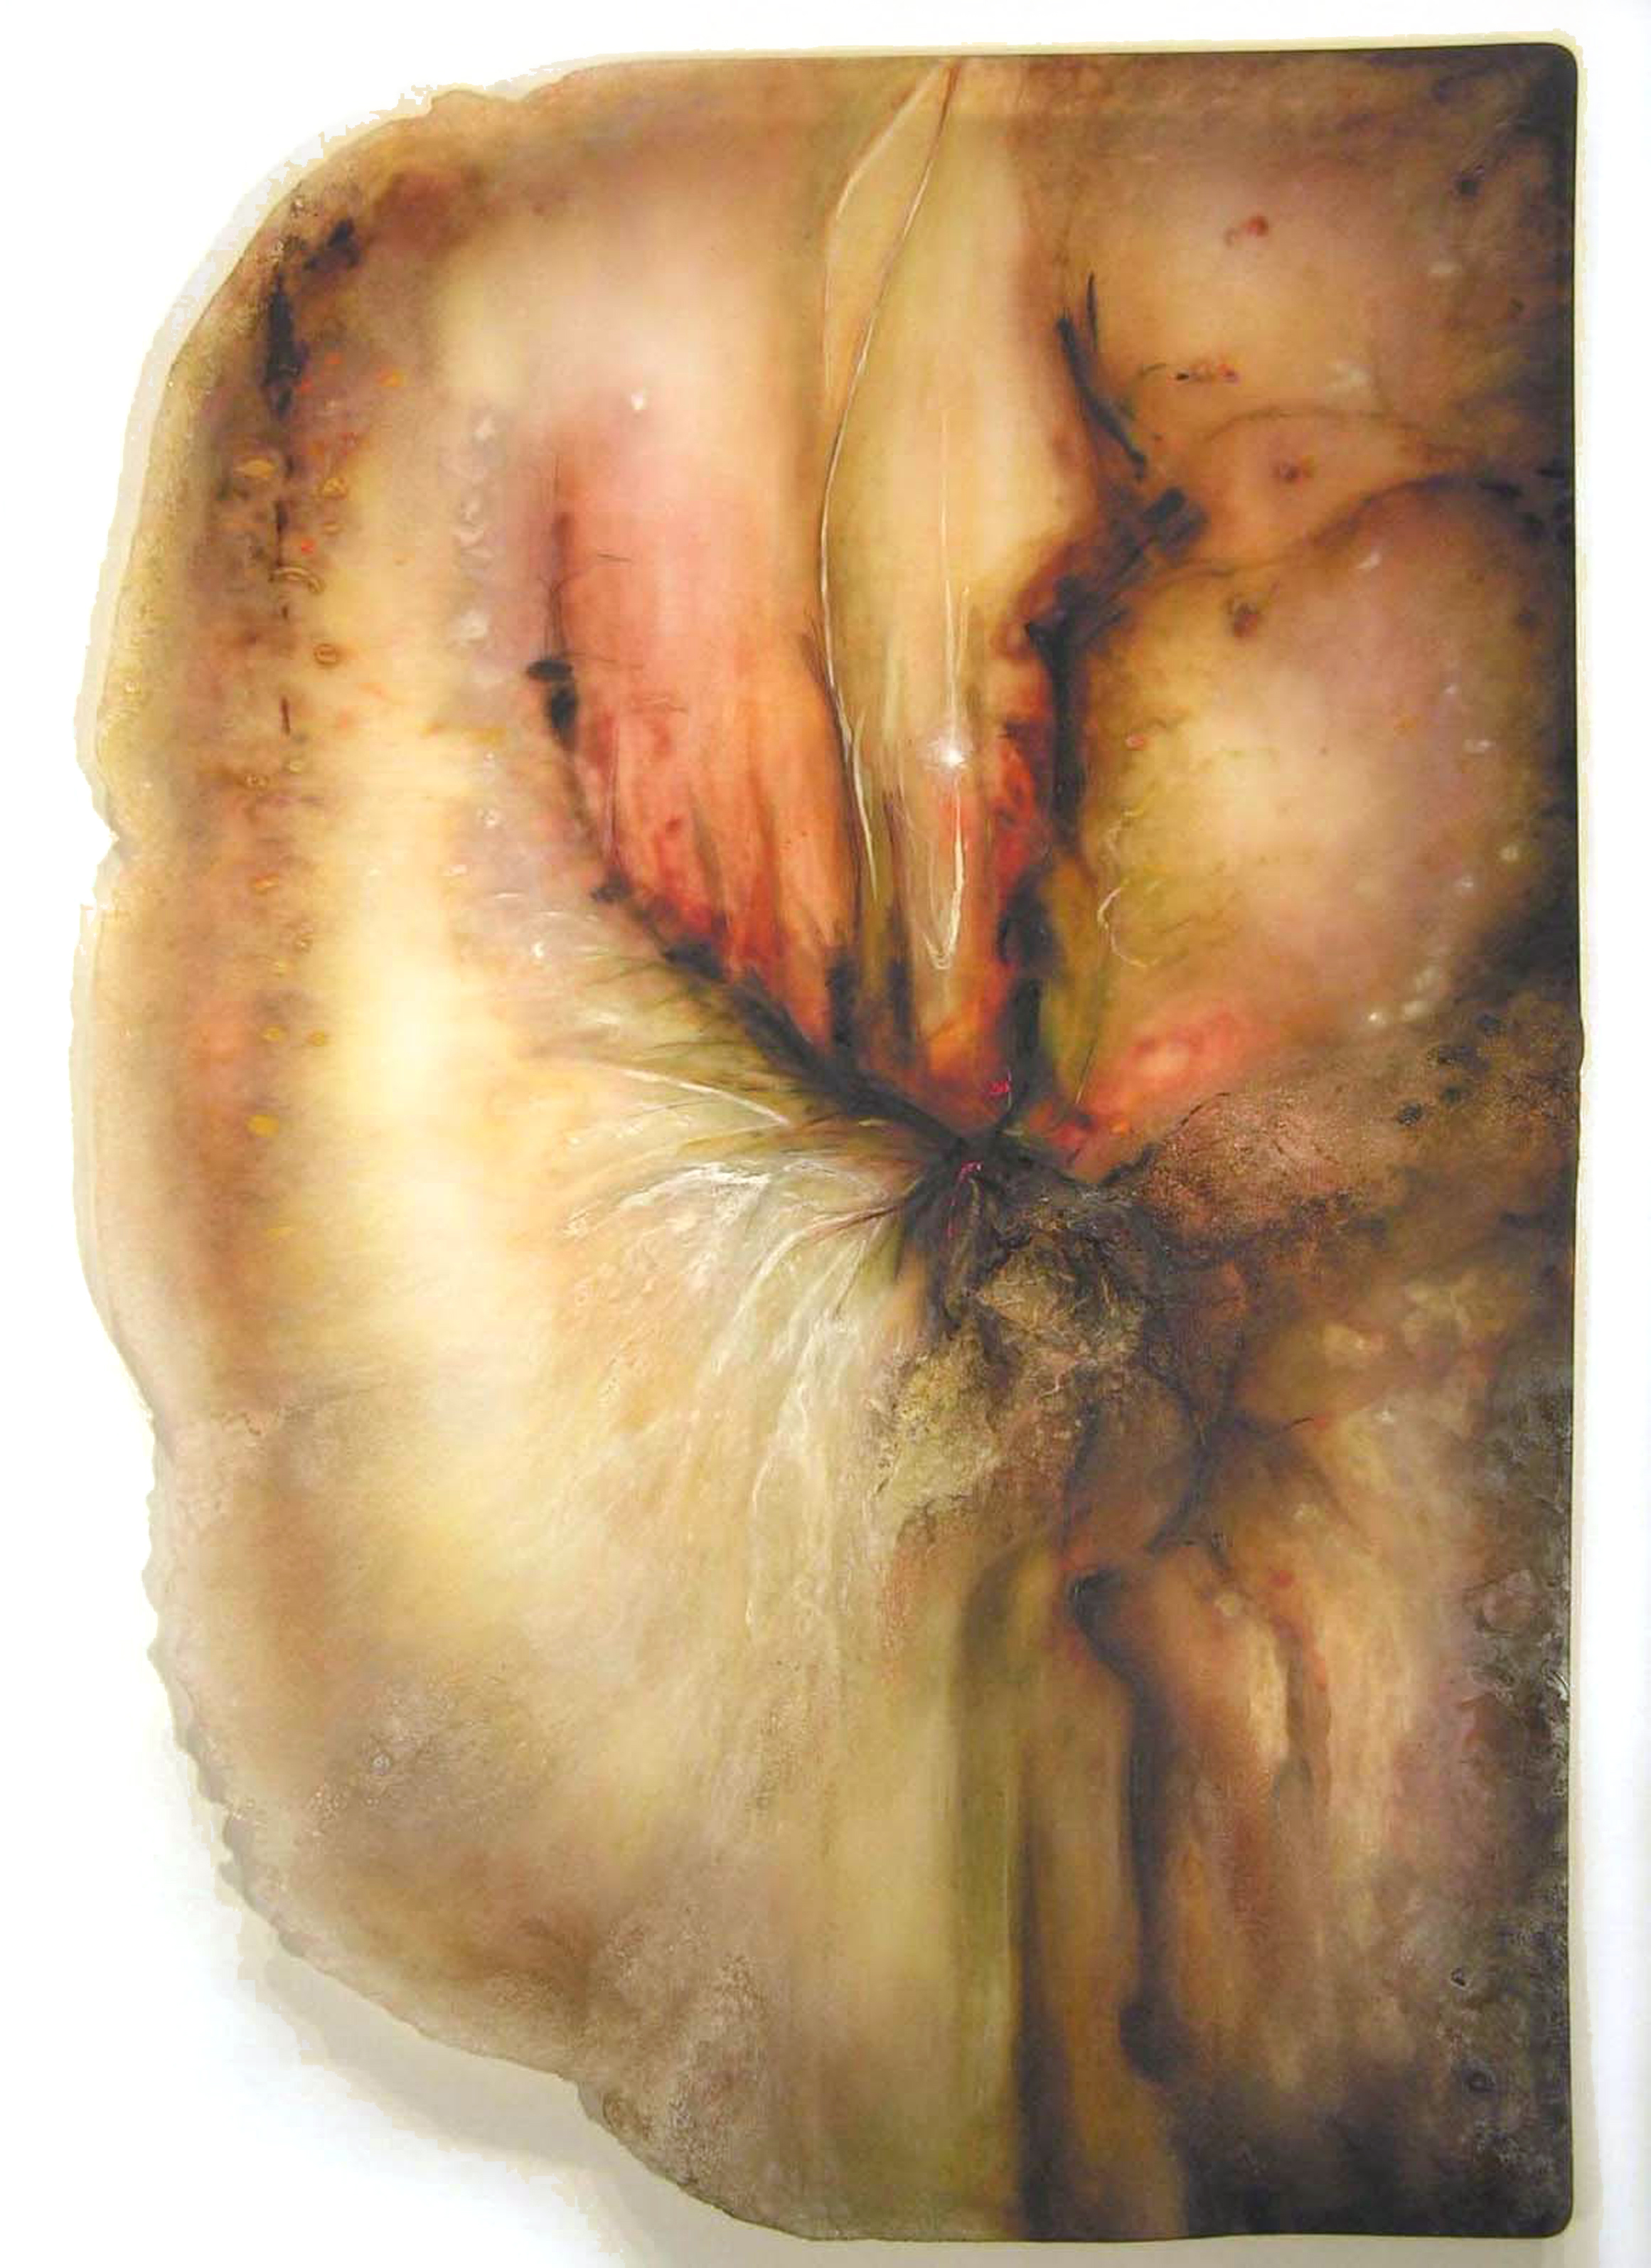 Hems a Light, Not Fading,  2005  Oil paint, oil bar, acrylic, and prismacolor on plexi 38 x 29 x 1 inches